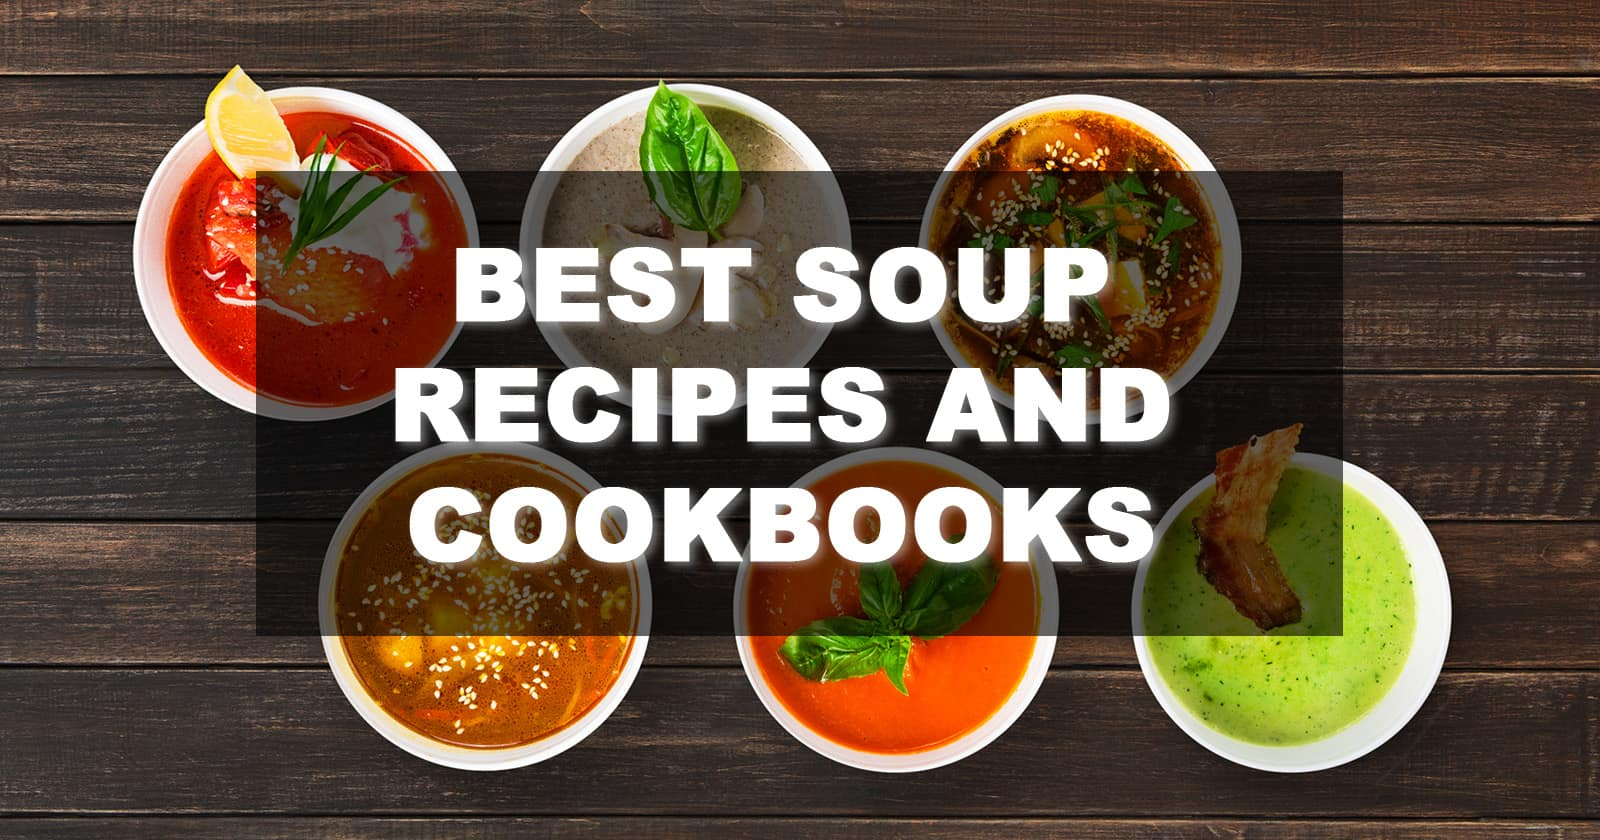 Best Soup Recipes and Cookbooks